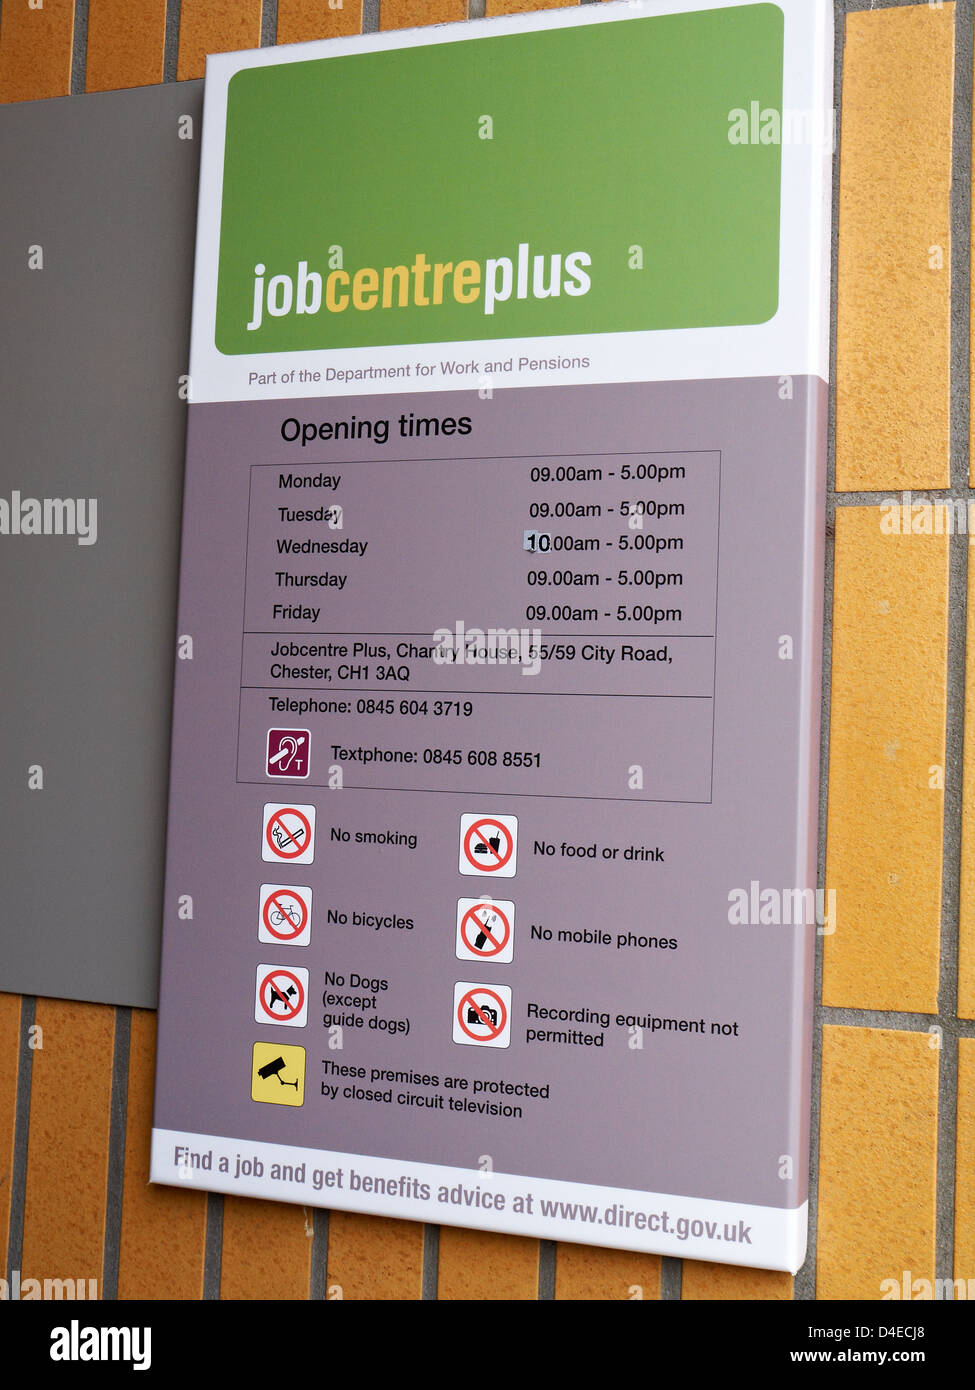 Job centre plus sign in Chester Cheshire UK Stock Photo